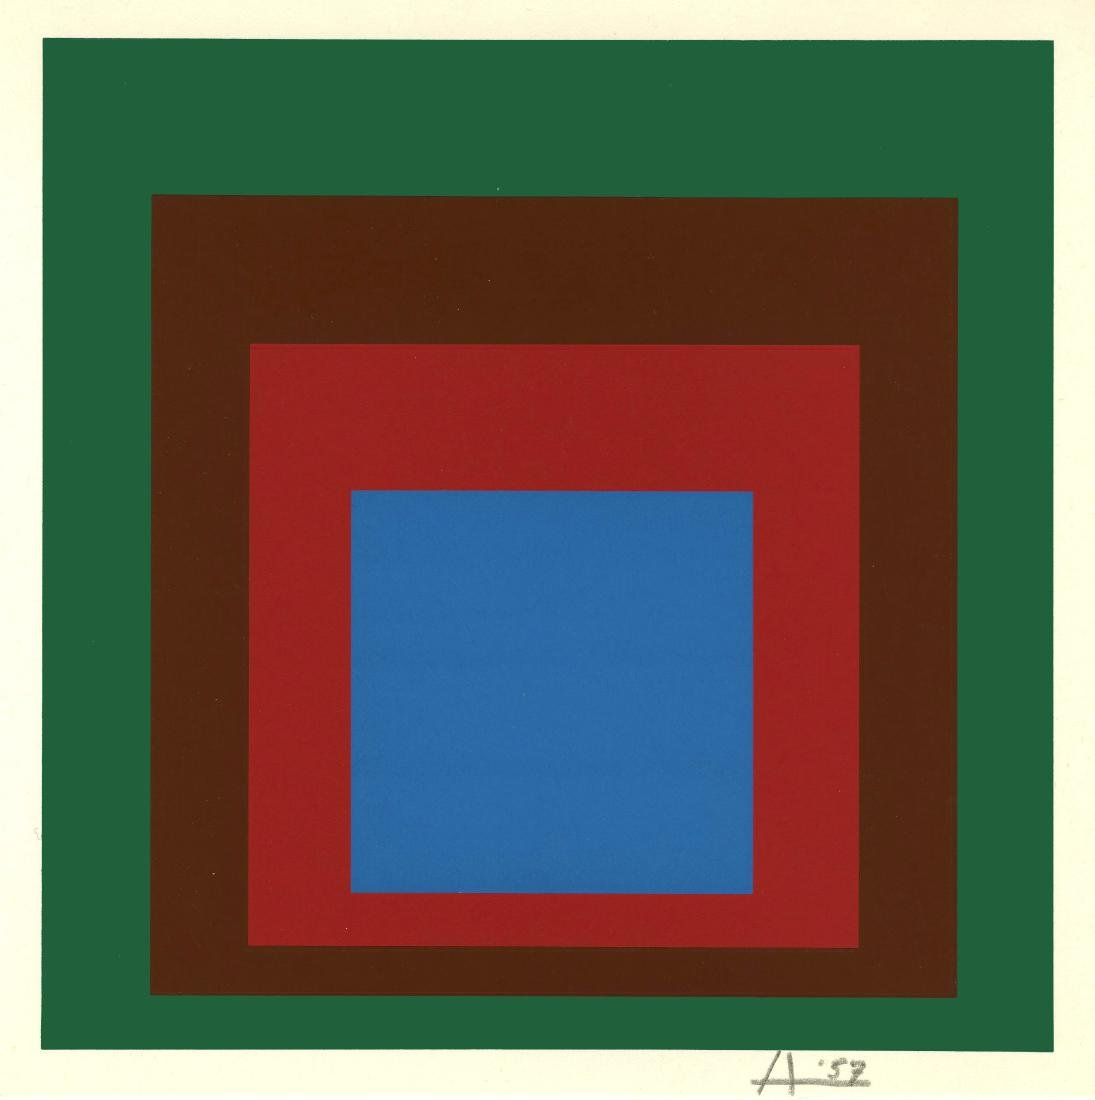 871: JOSEF ALBERS - Homage to the Square: Protected